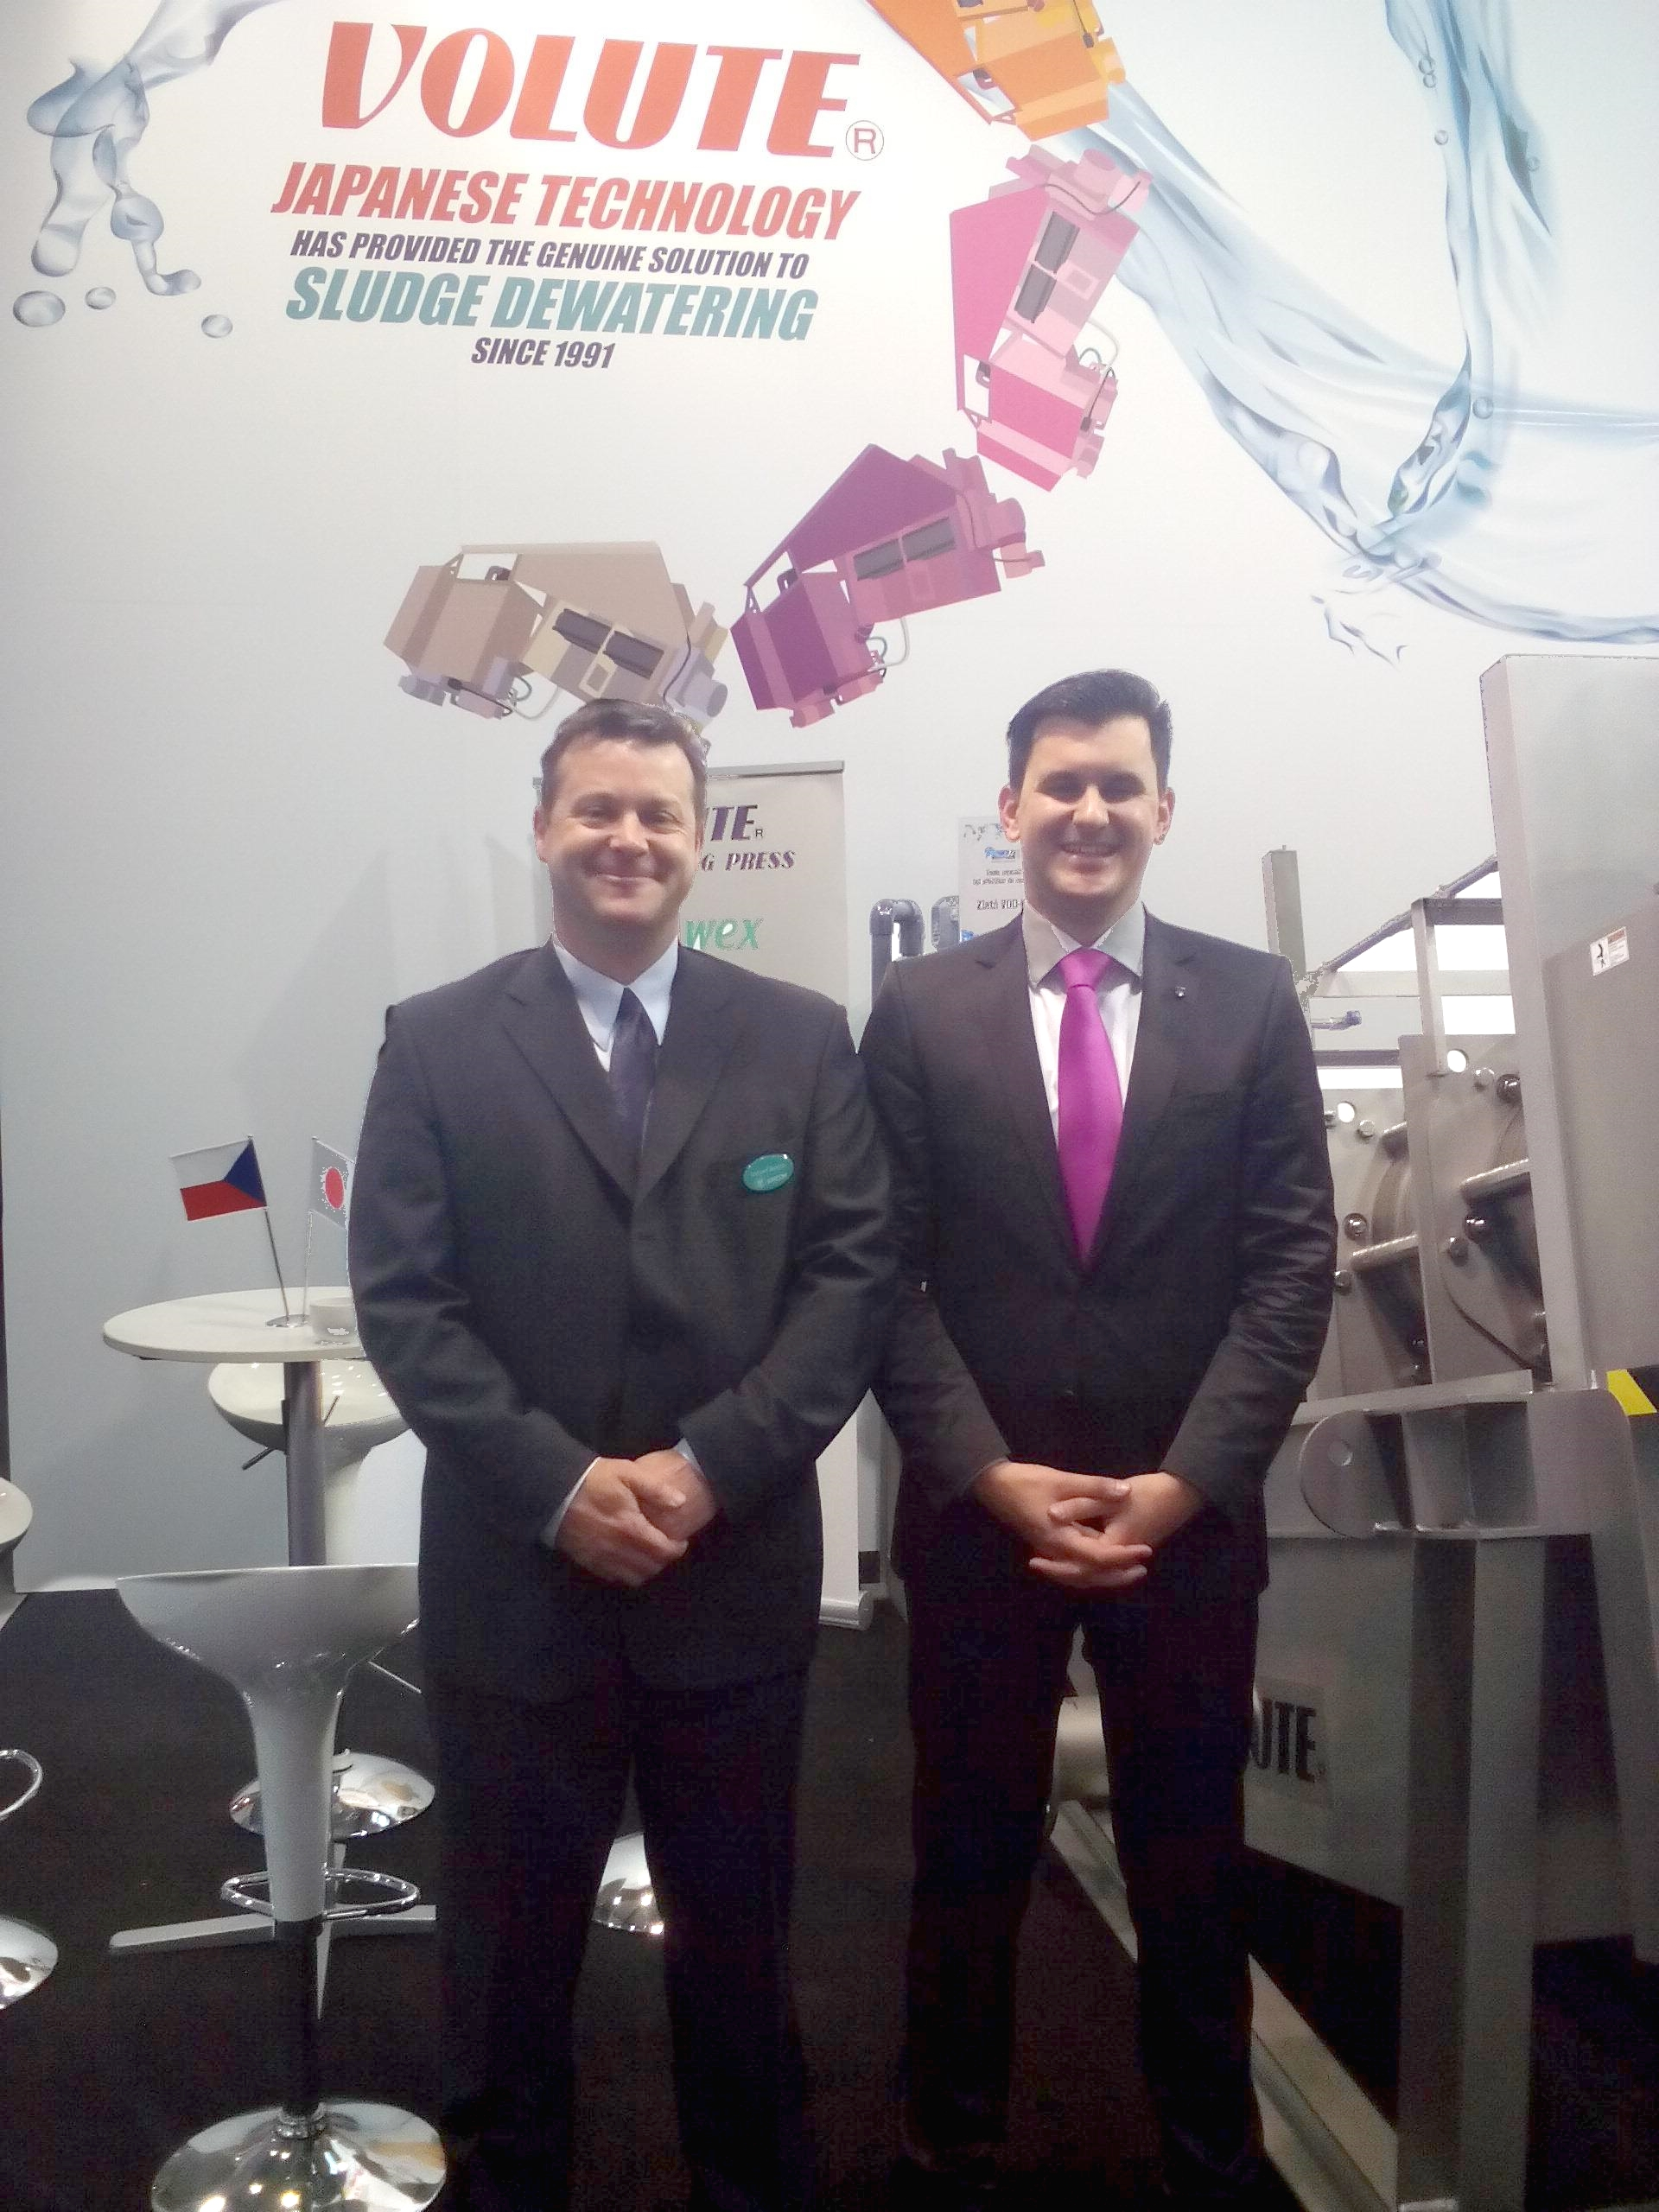 Richard and Jan at VODKA presenting the VOLUTE™ Dewatering press